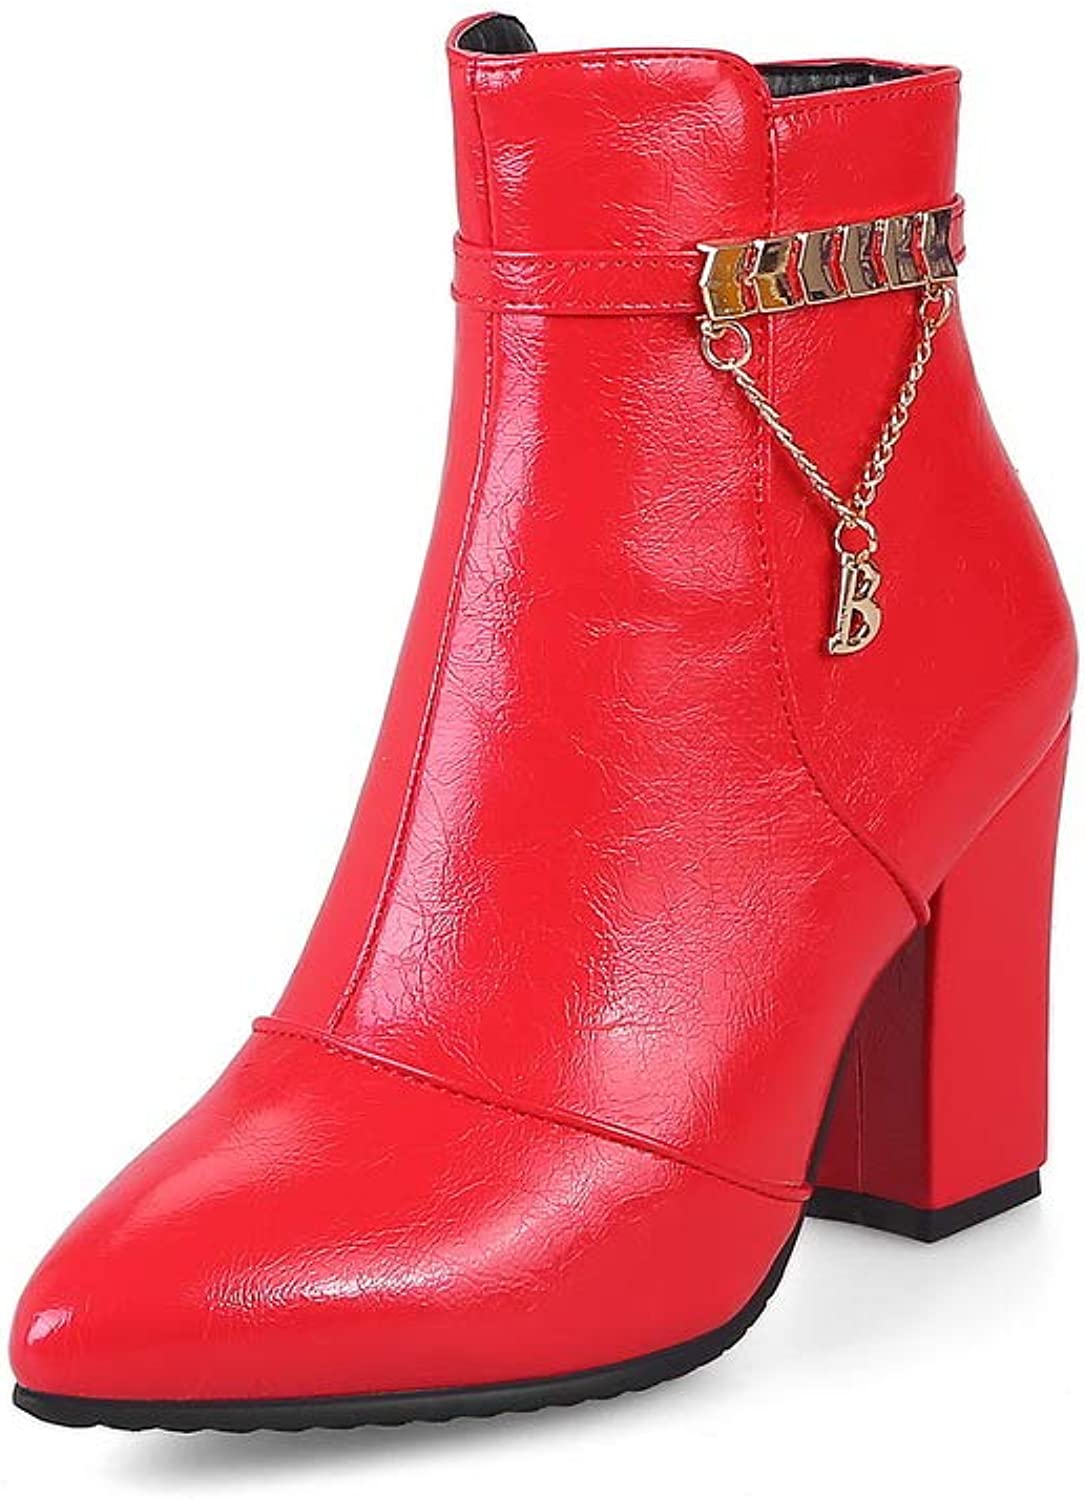 BalaMasa Womens Chunky Heels Zipper Pointed-Toe Patent-Leather Boots ABL11217